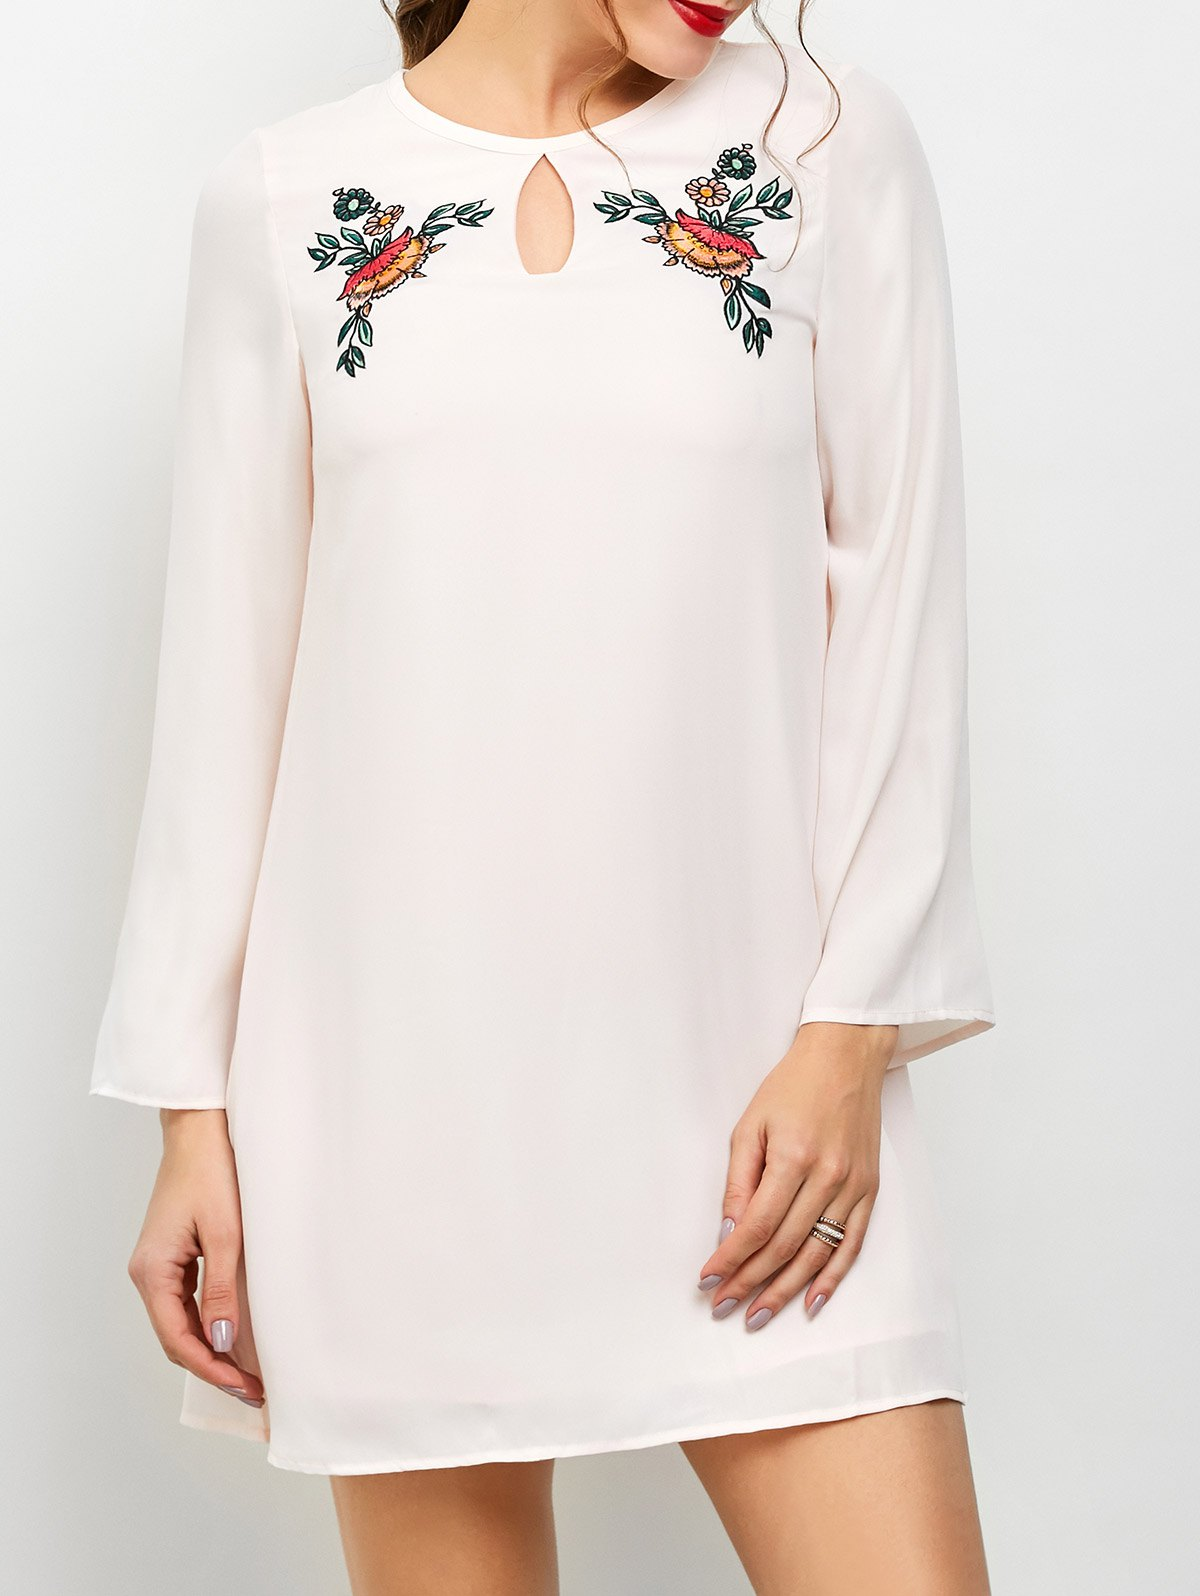 Long Sleeve Floral Embroidered Chiffon Dress